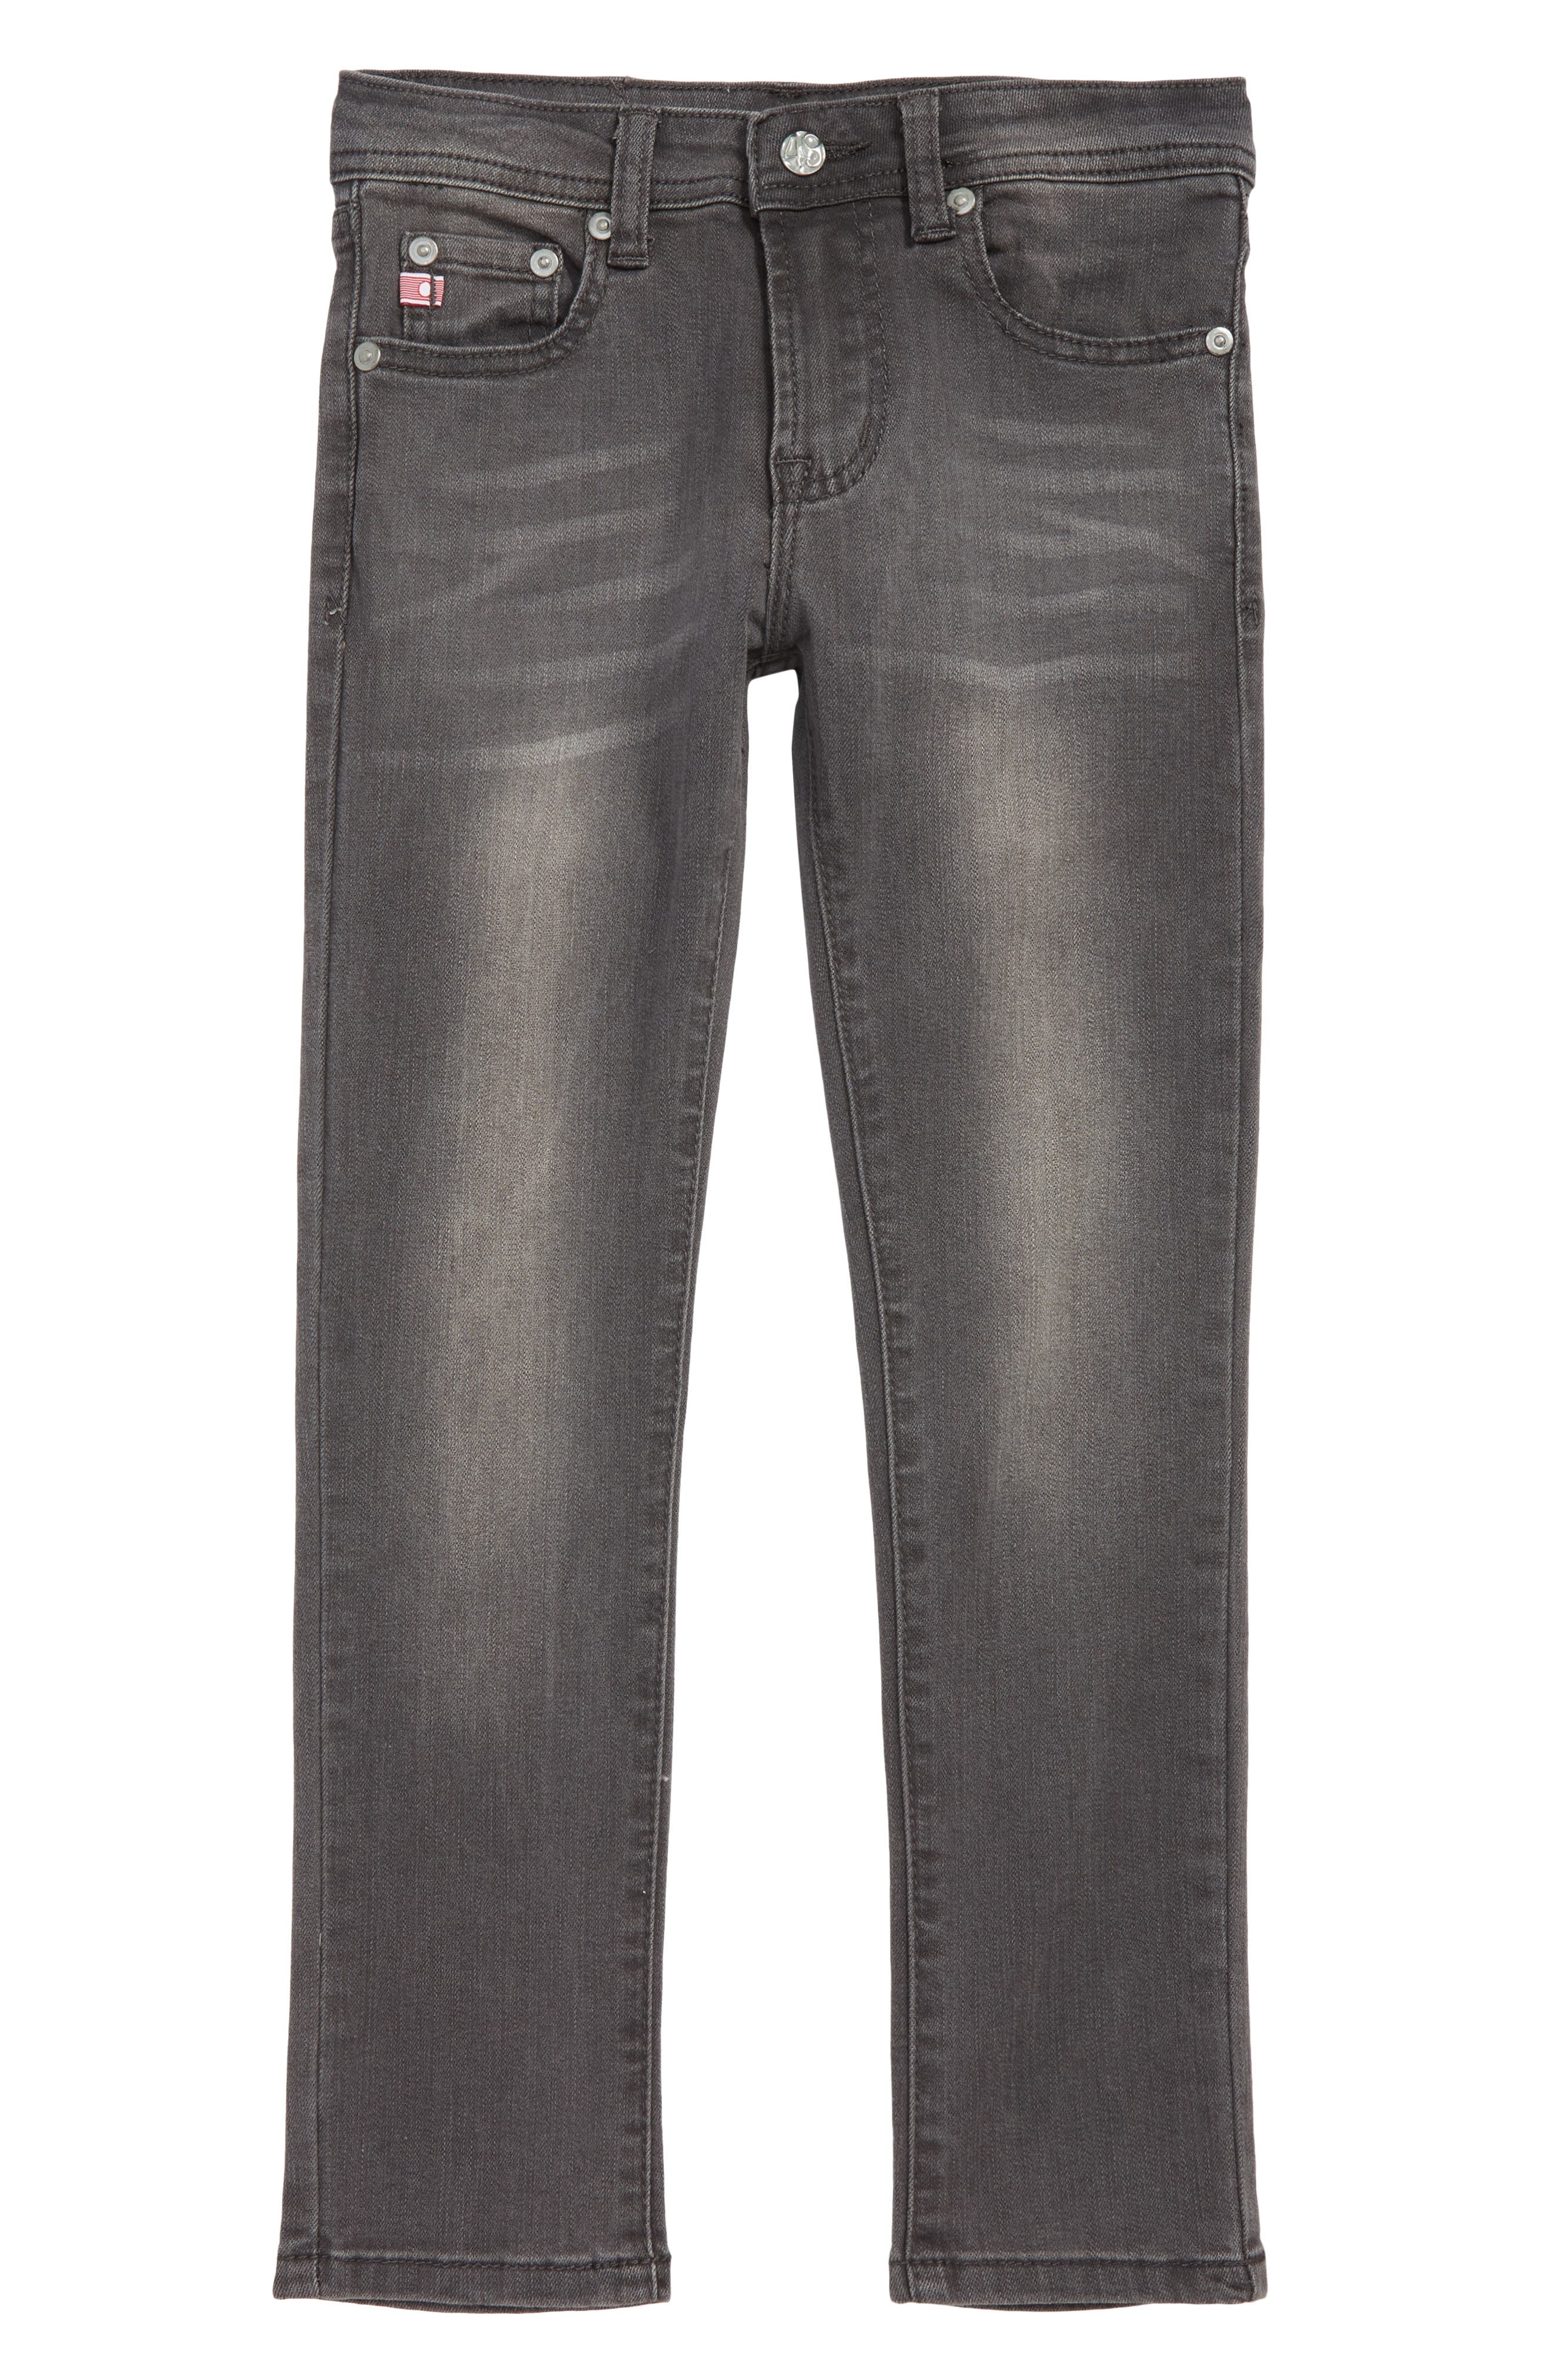 adriano goldschmied kids The Kingston Slim Jeans,                             Main thumbnail 1, color,                             097